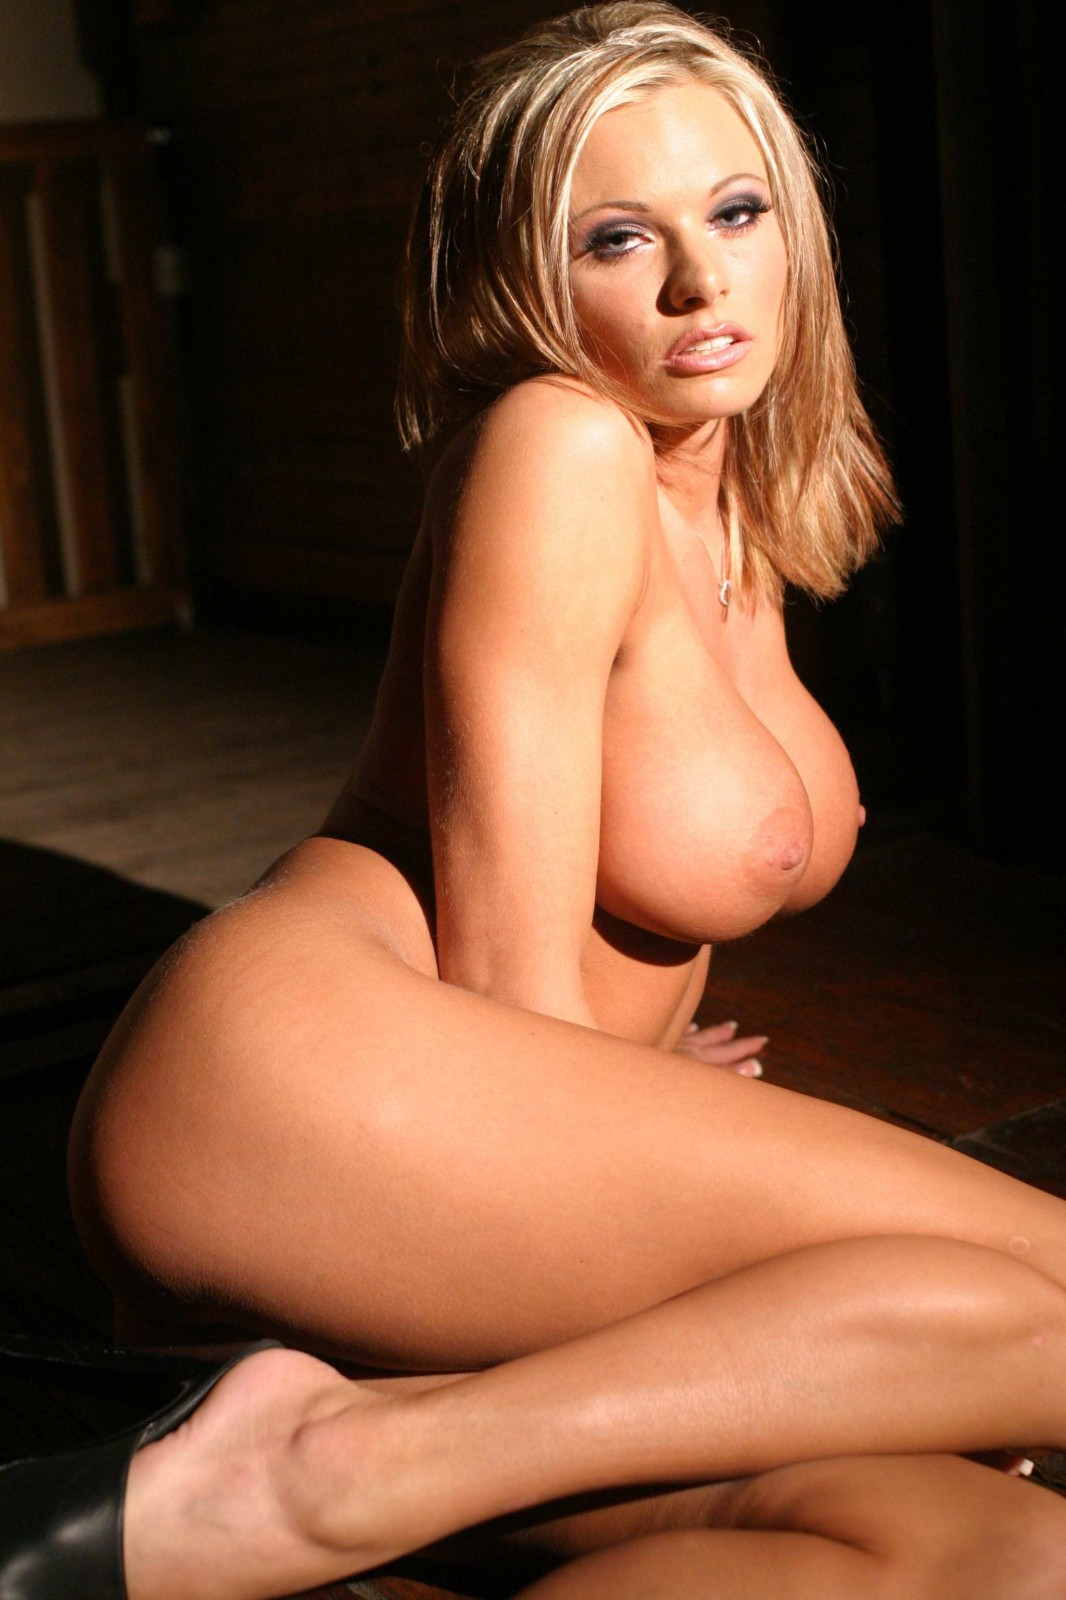 briana banks porn hot